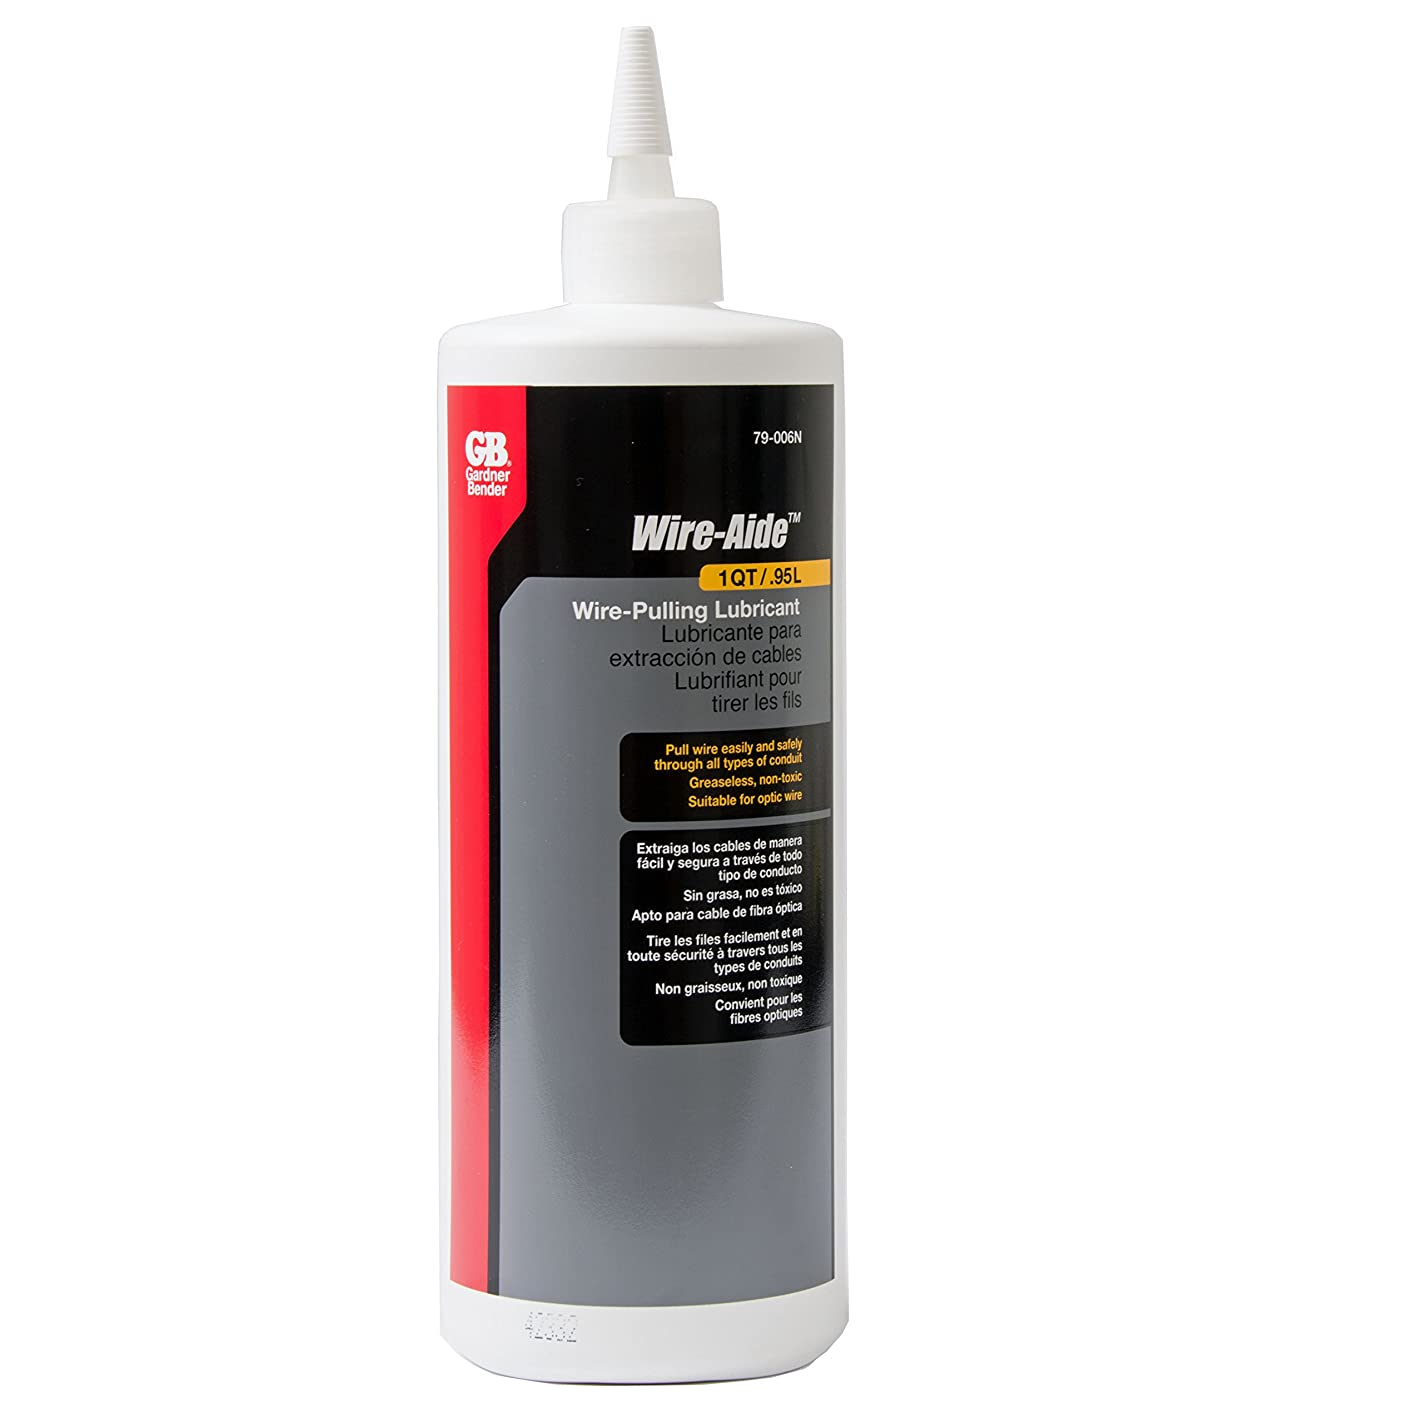 Gardner Bender 79-006N Wire-Aide Wire Pulling Lubricant, Greaseless Fiber-Optic Wire Insulation, 1 Qt. Squeeze Bottle, Yellow